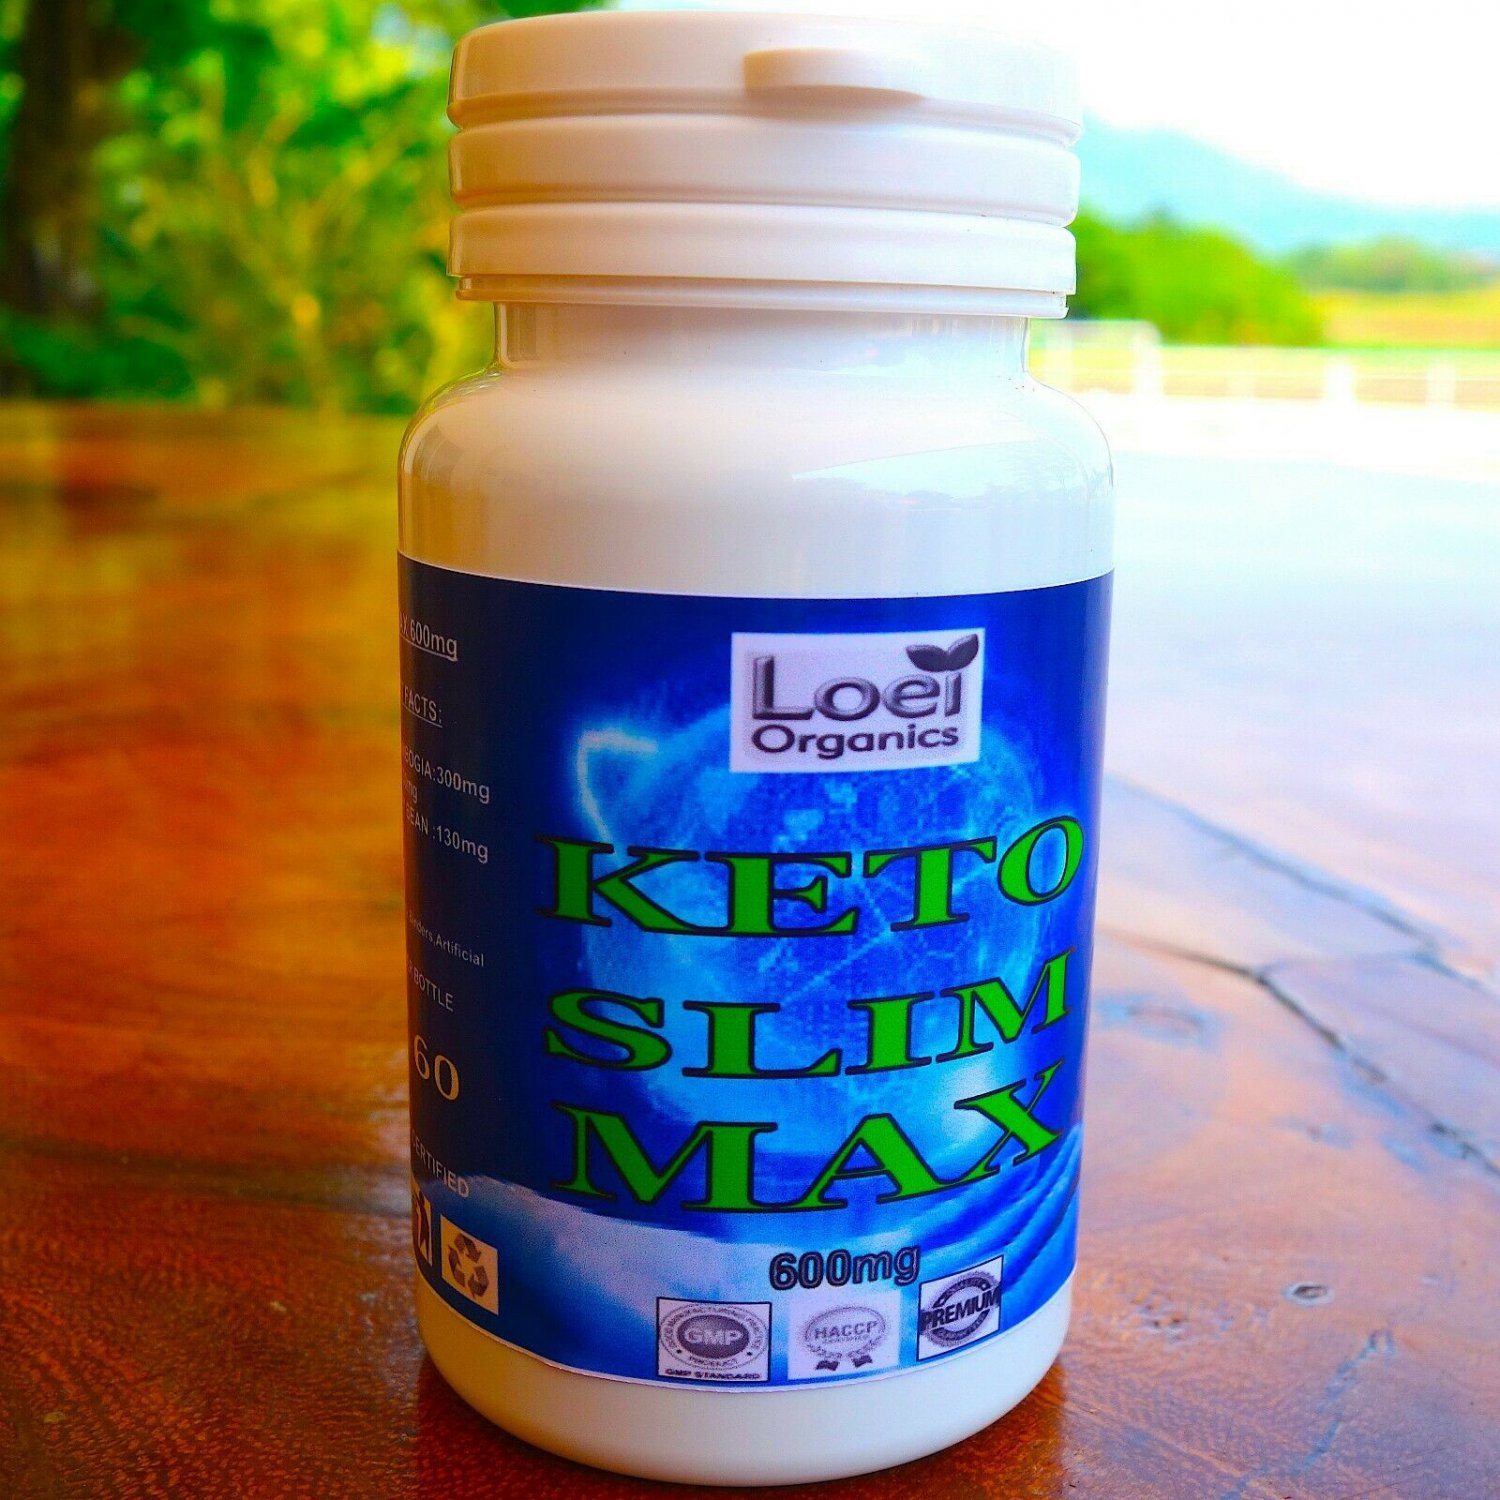 ETO SLIMAX - ADVANCED WEIGHT LOSS (60 Capsules),Ketosis/Keto Diet/Weight loss ZX